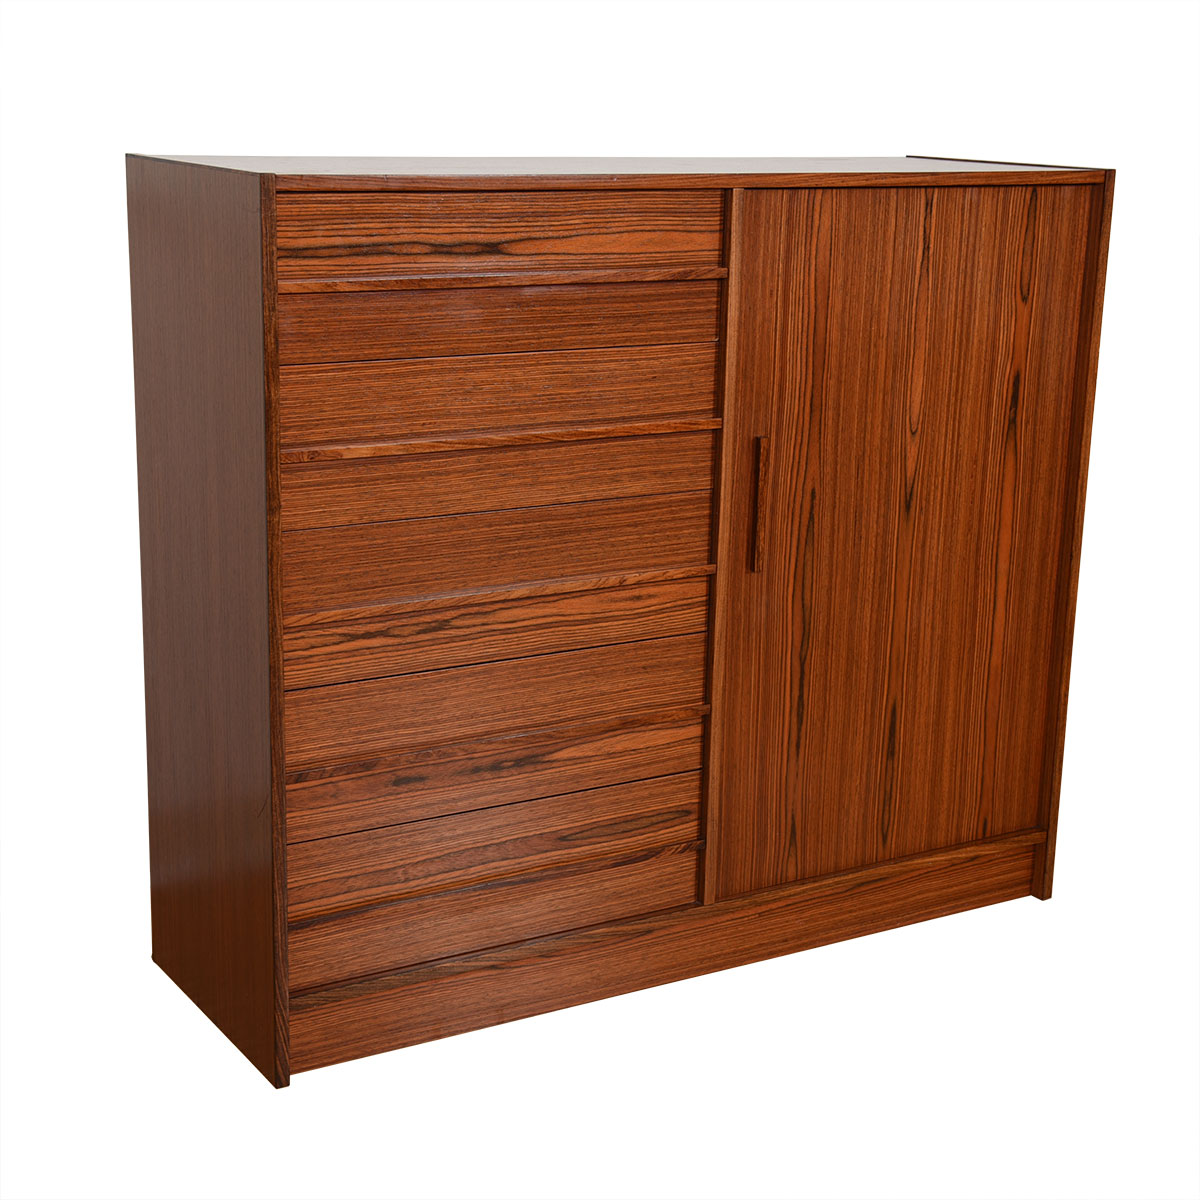 Scandinavian Modern Gentleman's Chest / Dresser